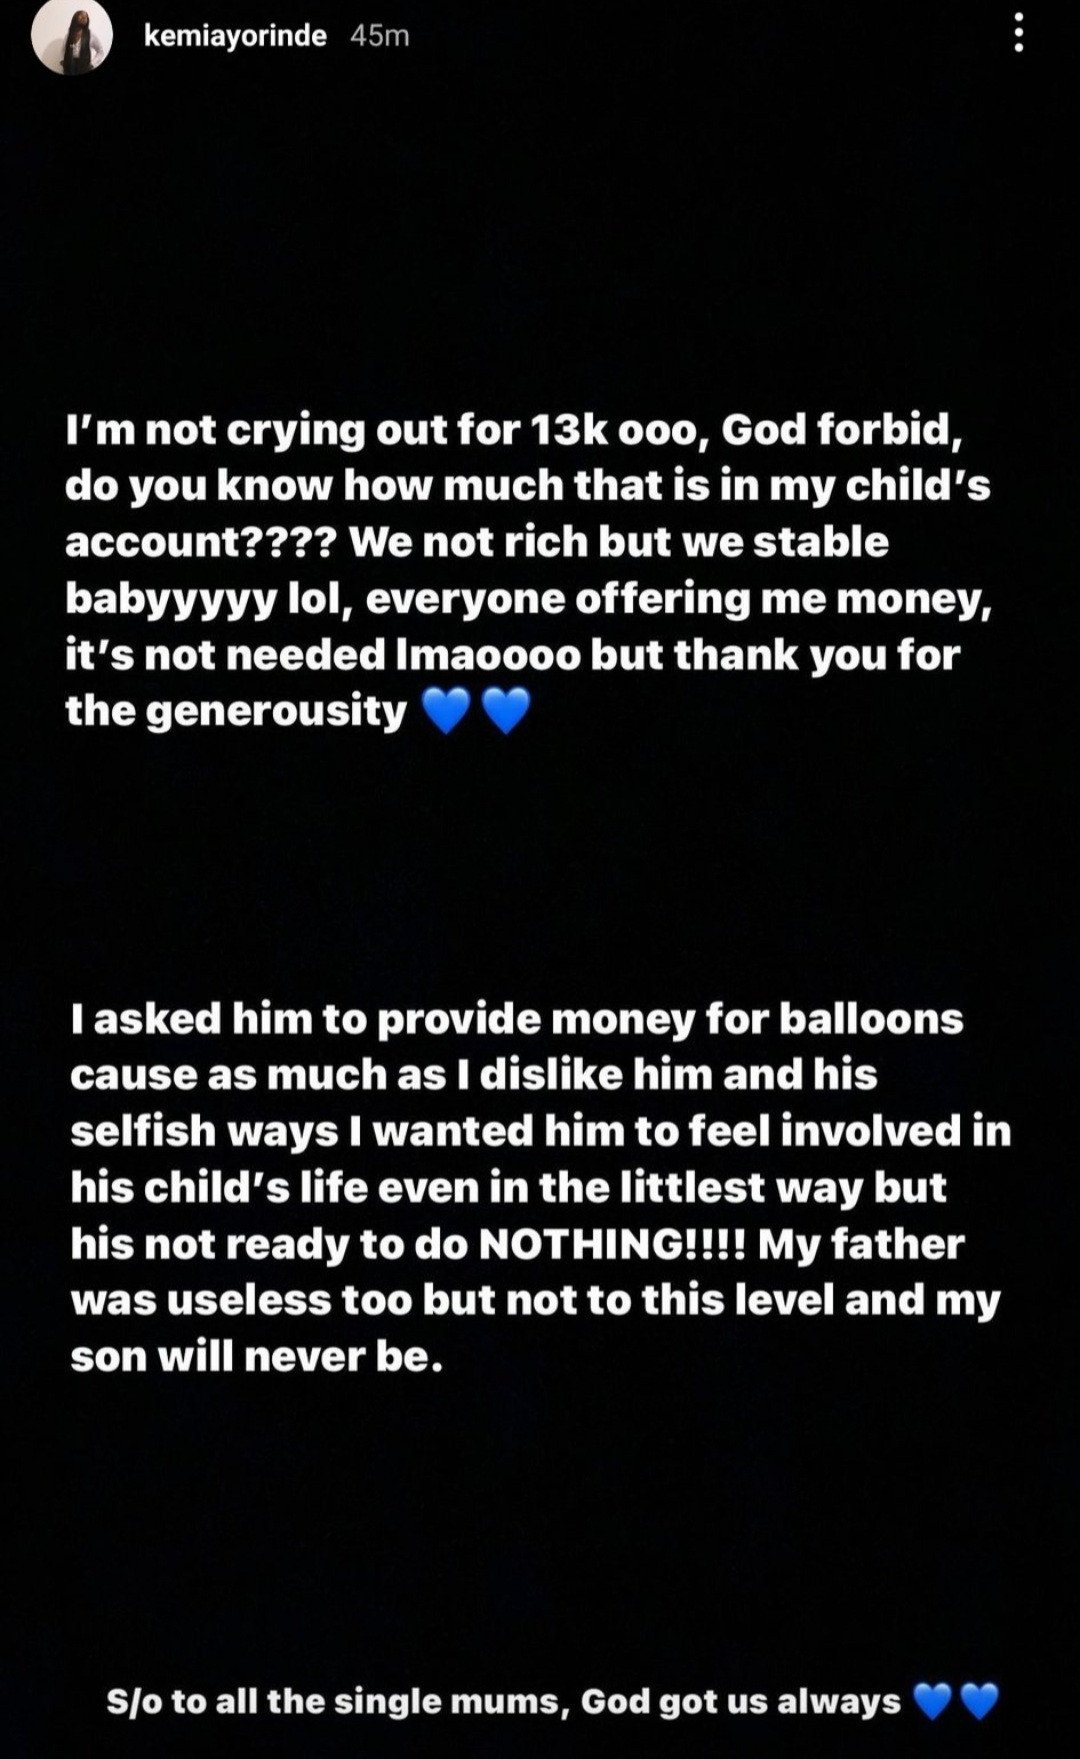 60a4cdb3048372052270066506612864 - Lyta's Baby mama continues to drag him as she goes on a long rant about him not contributing financially